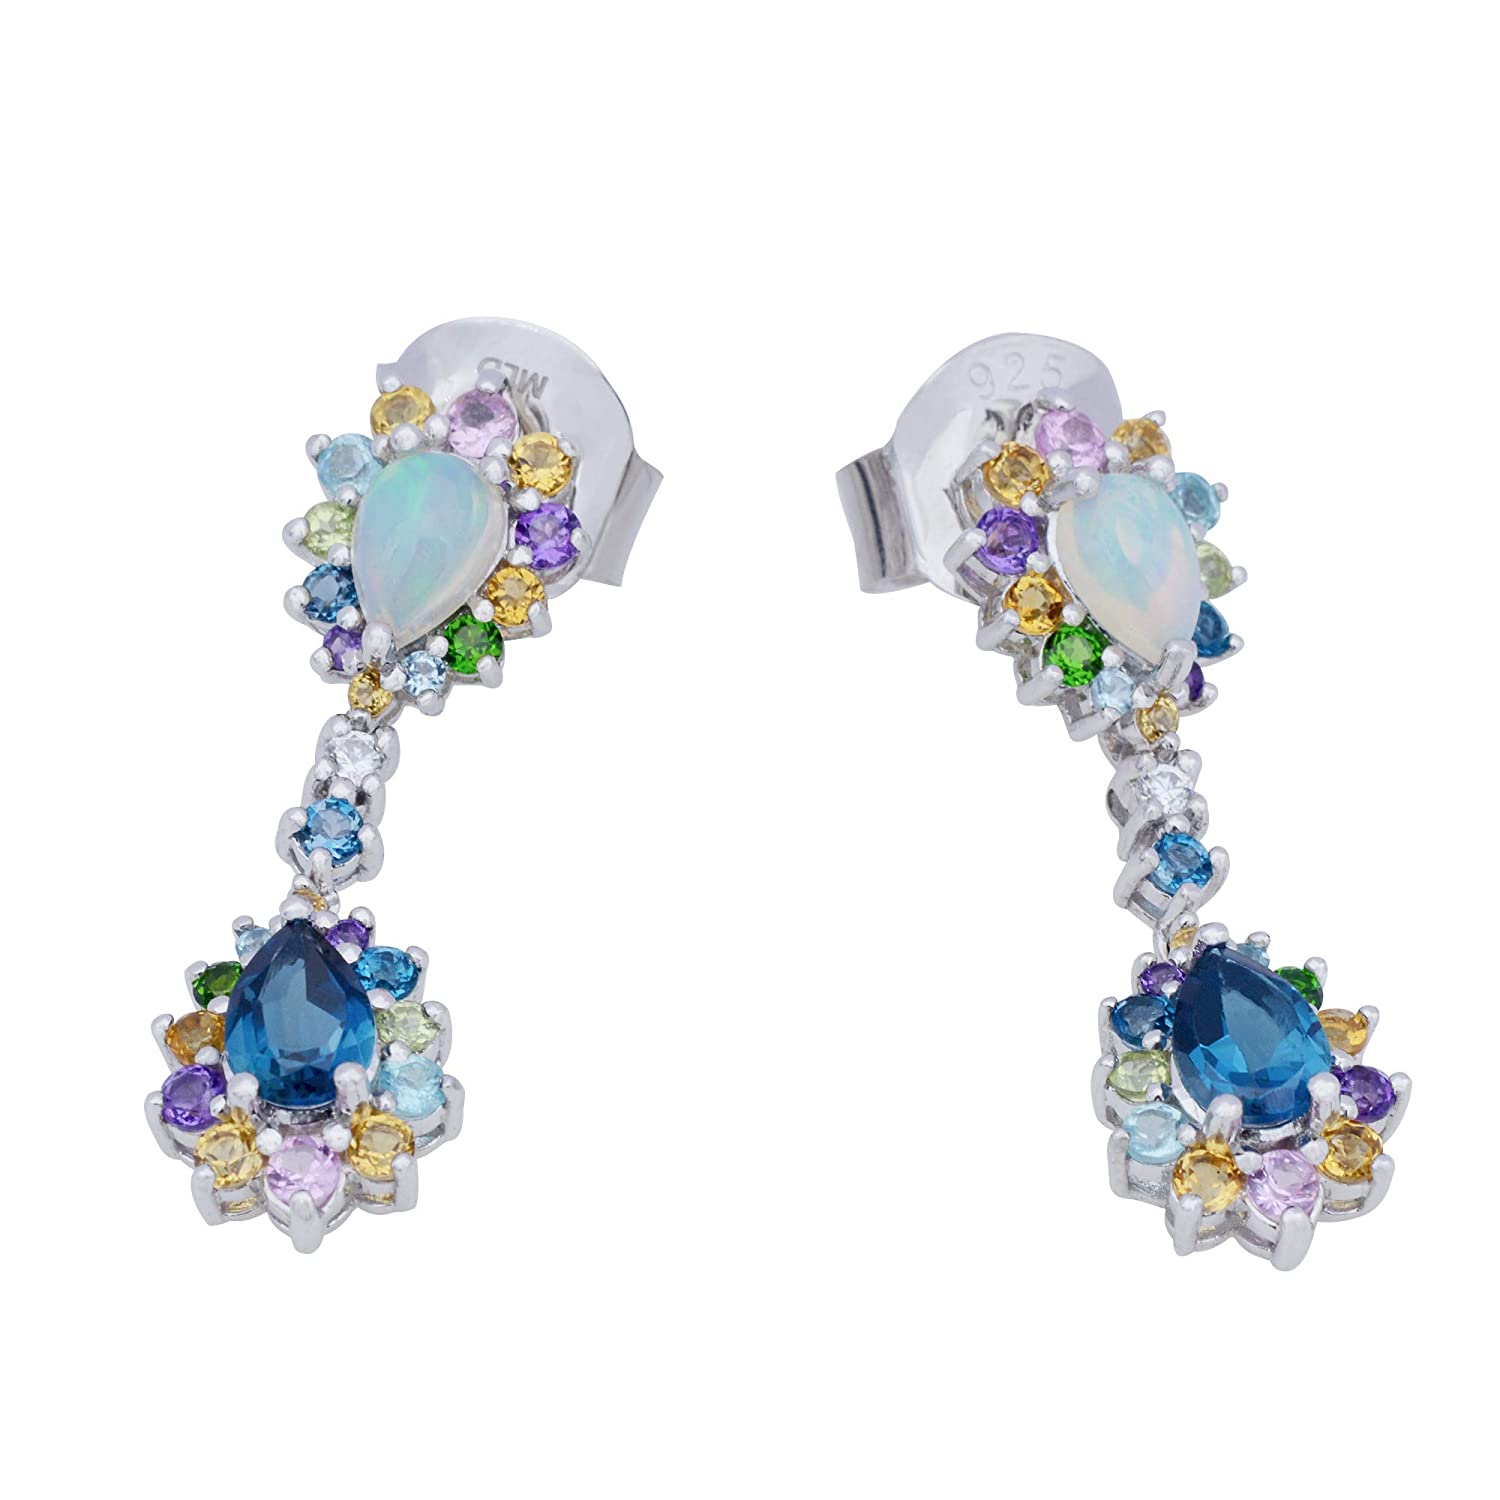 85d76d037 Amazon.com: Victoria Wieck 925 Sterling Silver Multi Gem Earring in White  Rhodium Plate.: Jewelry